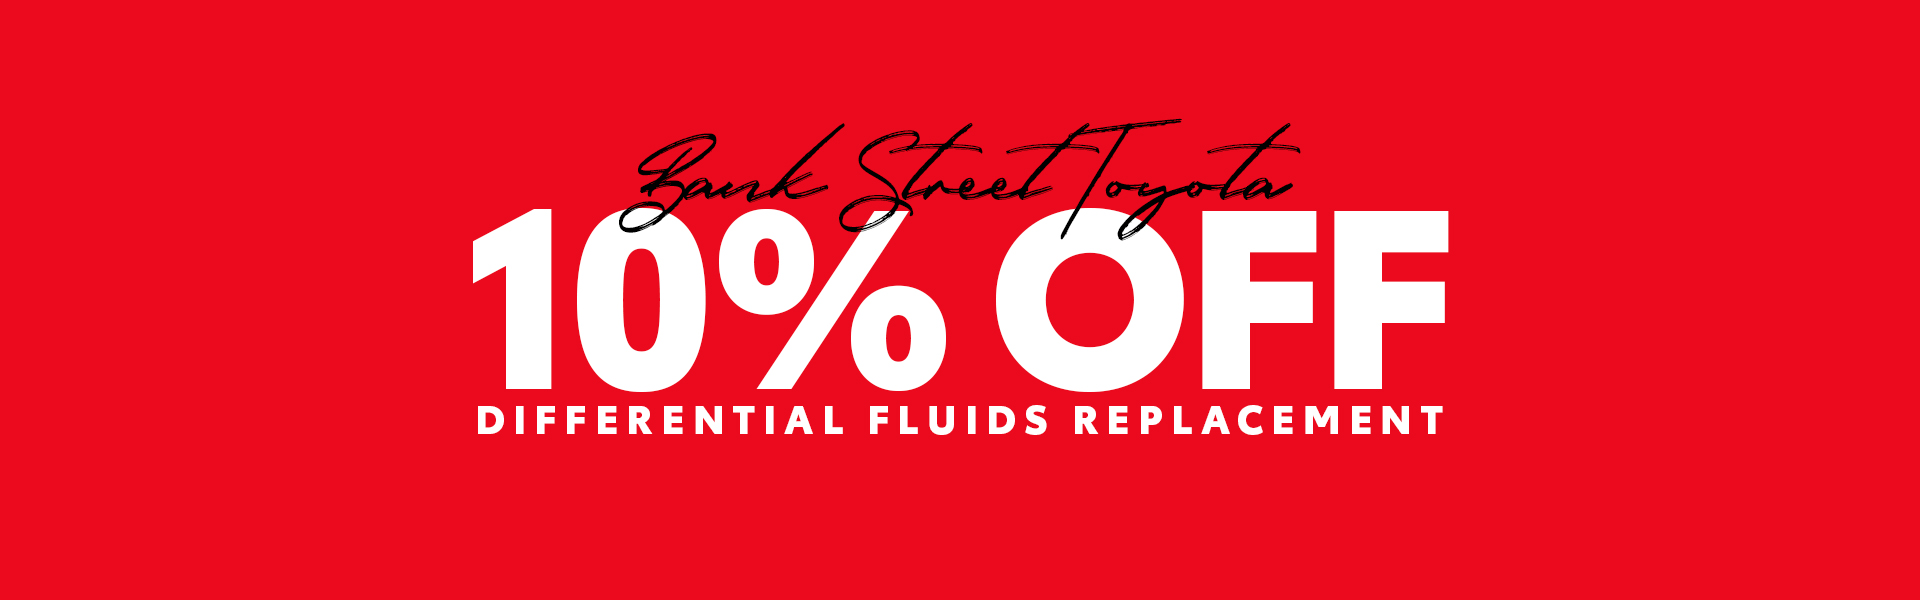 10% Off Differential Fluids Replacement